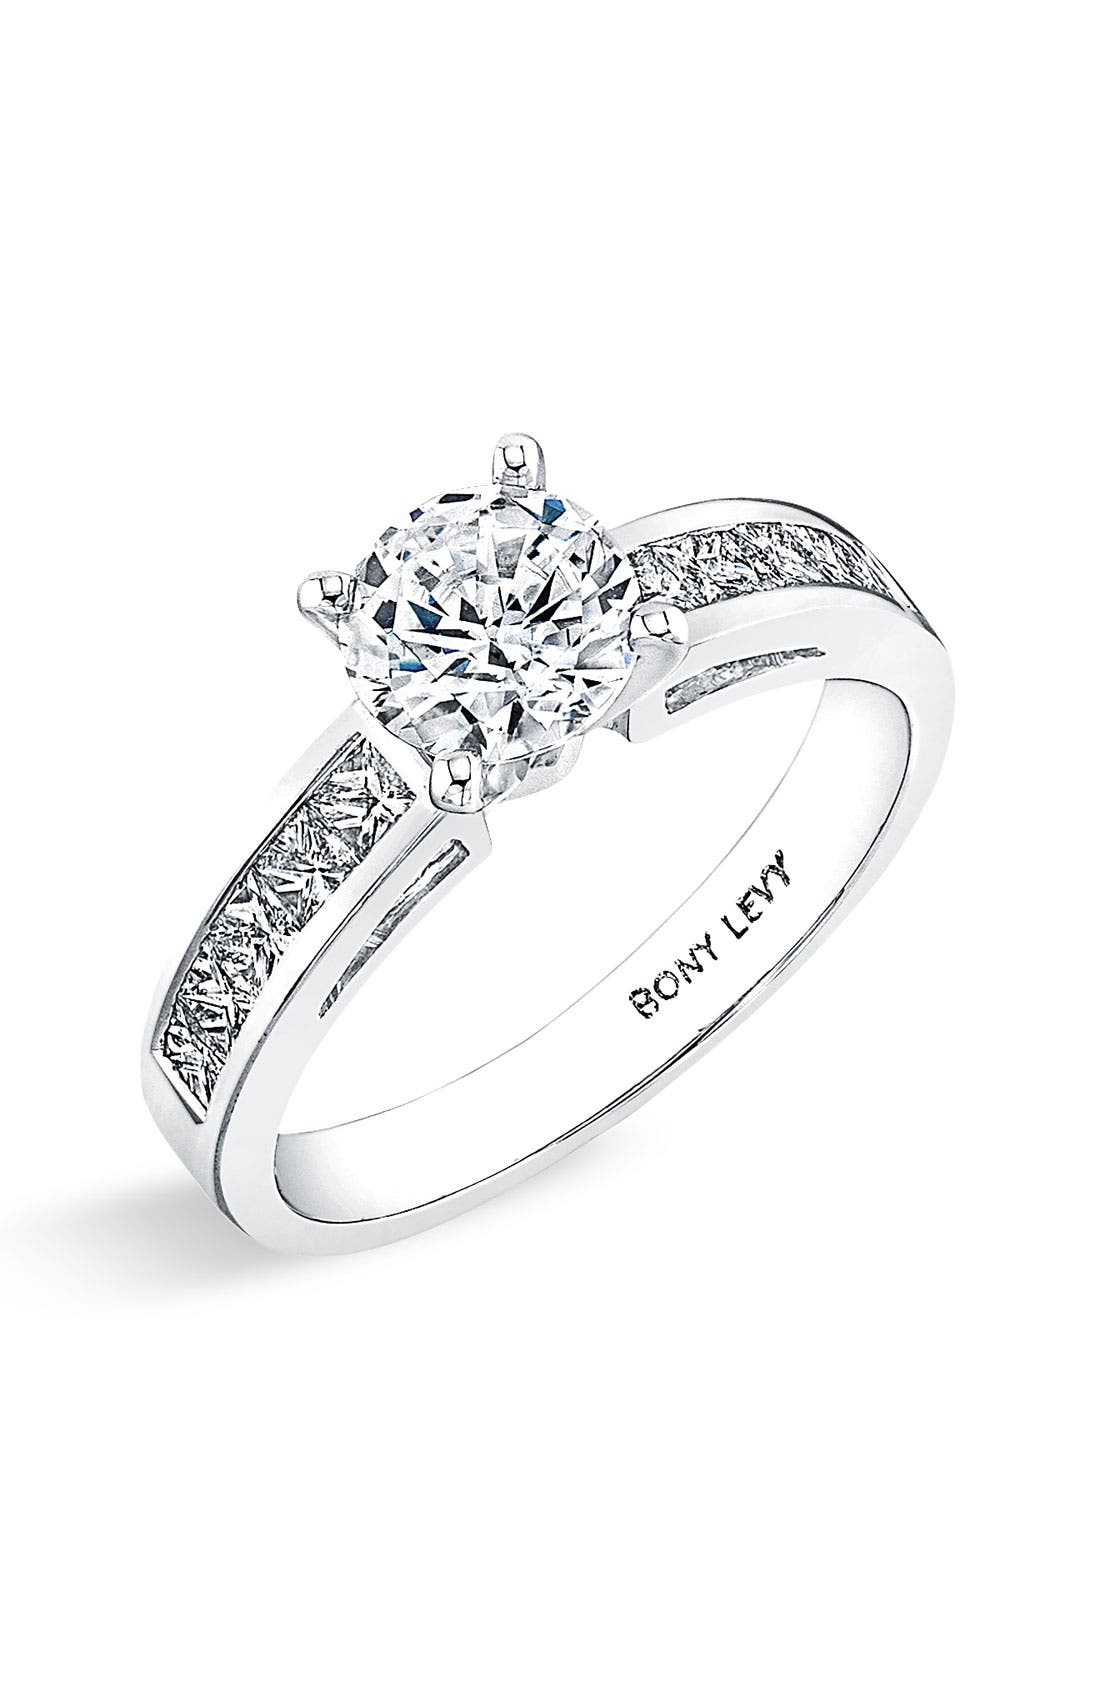 Main Image - Bony Levy Channel Set Diamond Engagement Ring Setting (Nordstrom Exclusive)